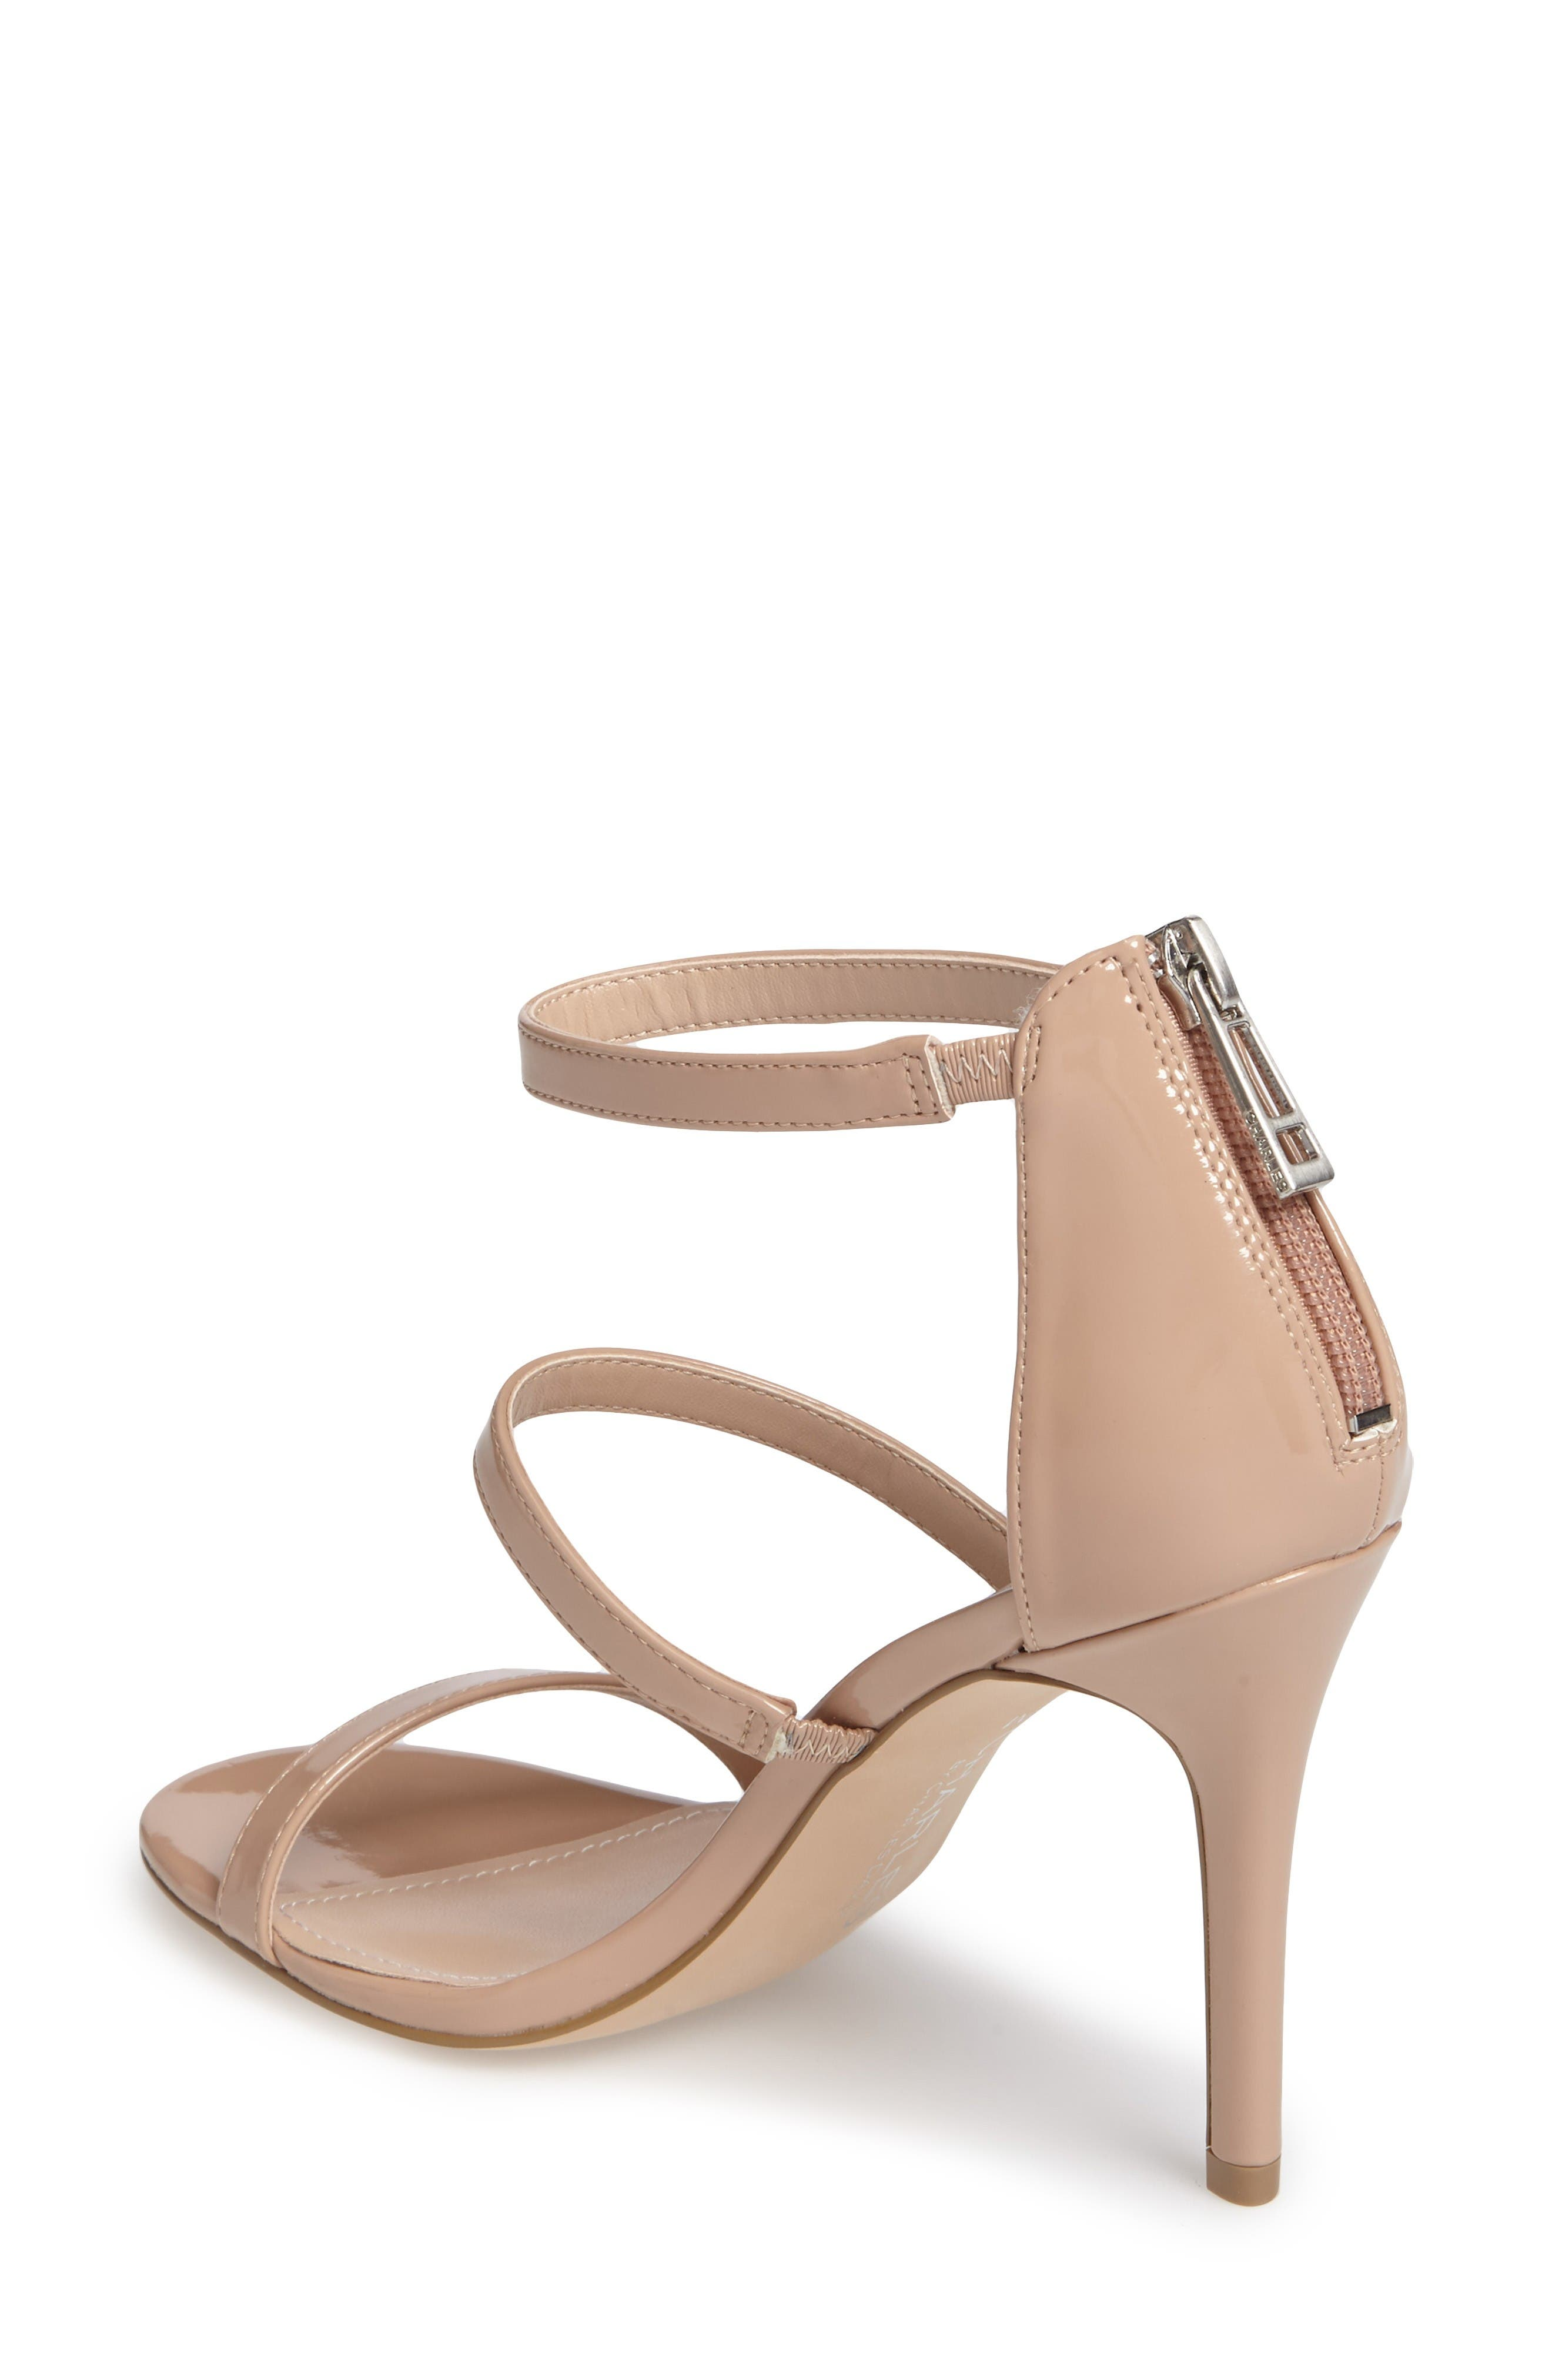 Ria Strappy Sandal,                             Alternate thumbnail 2, color,                             Nude Patent Leather